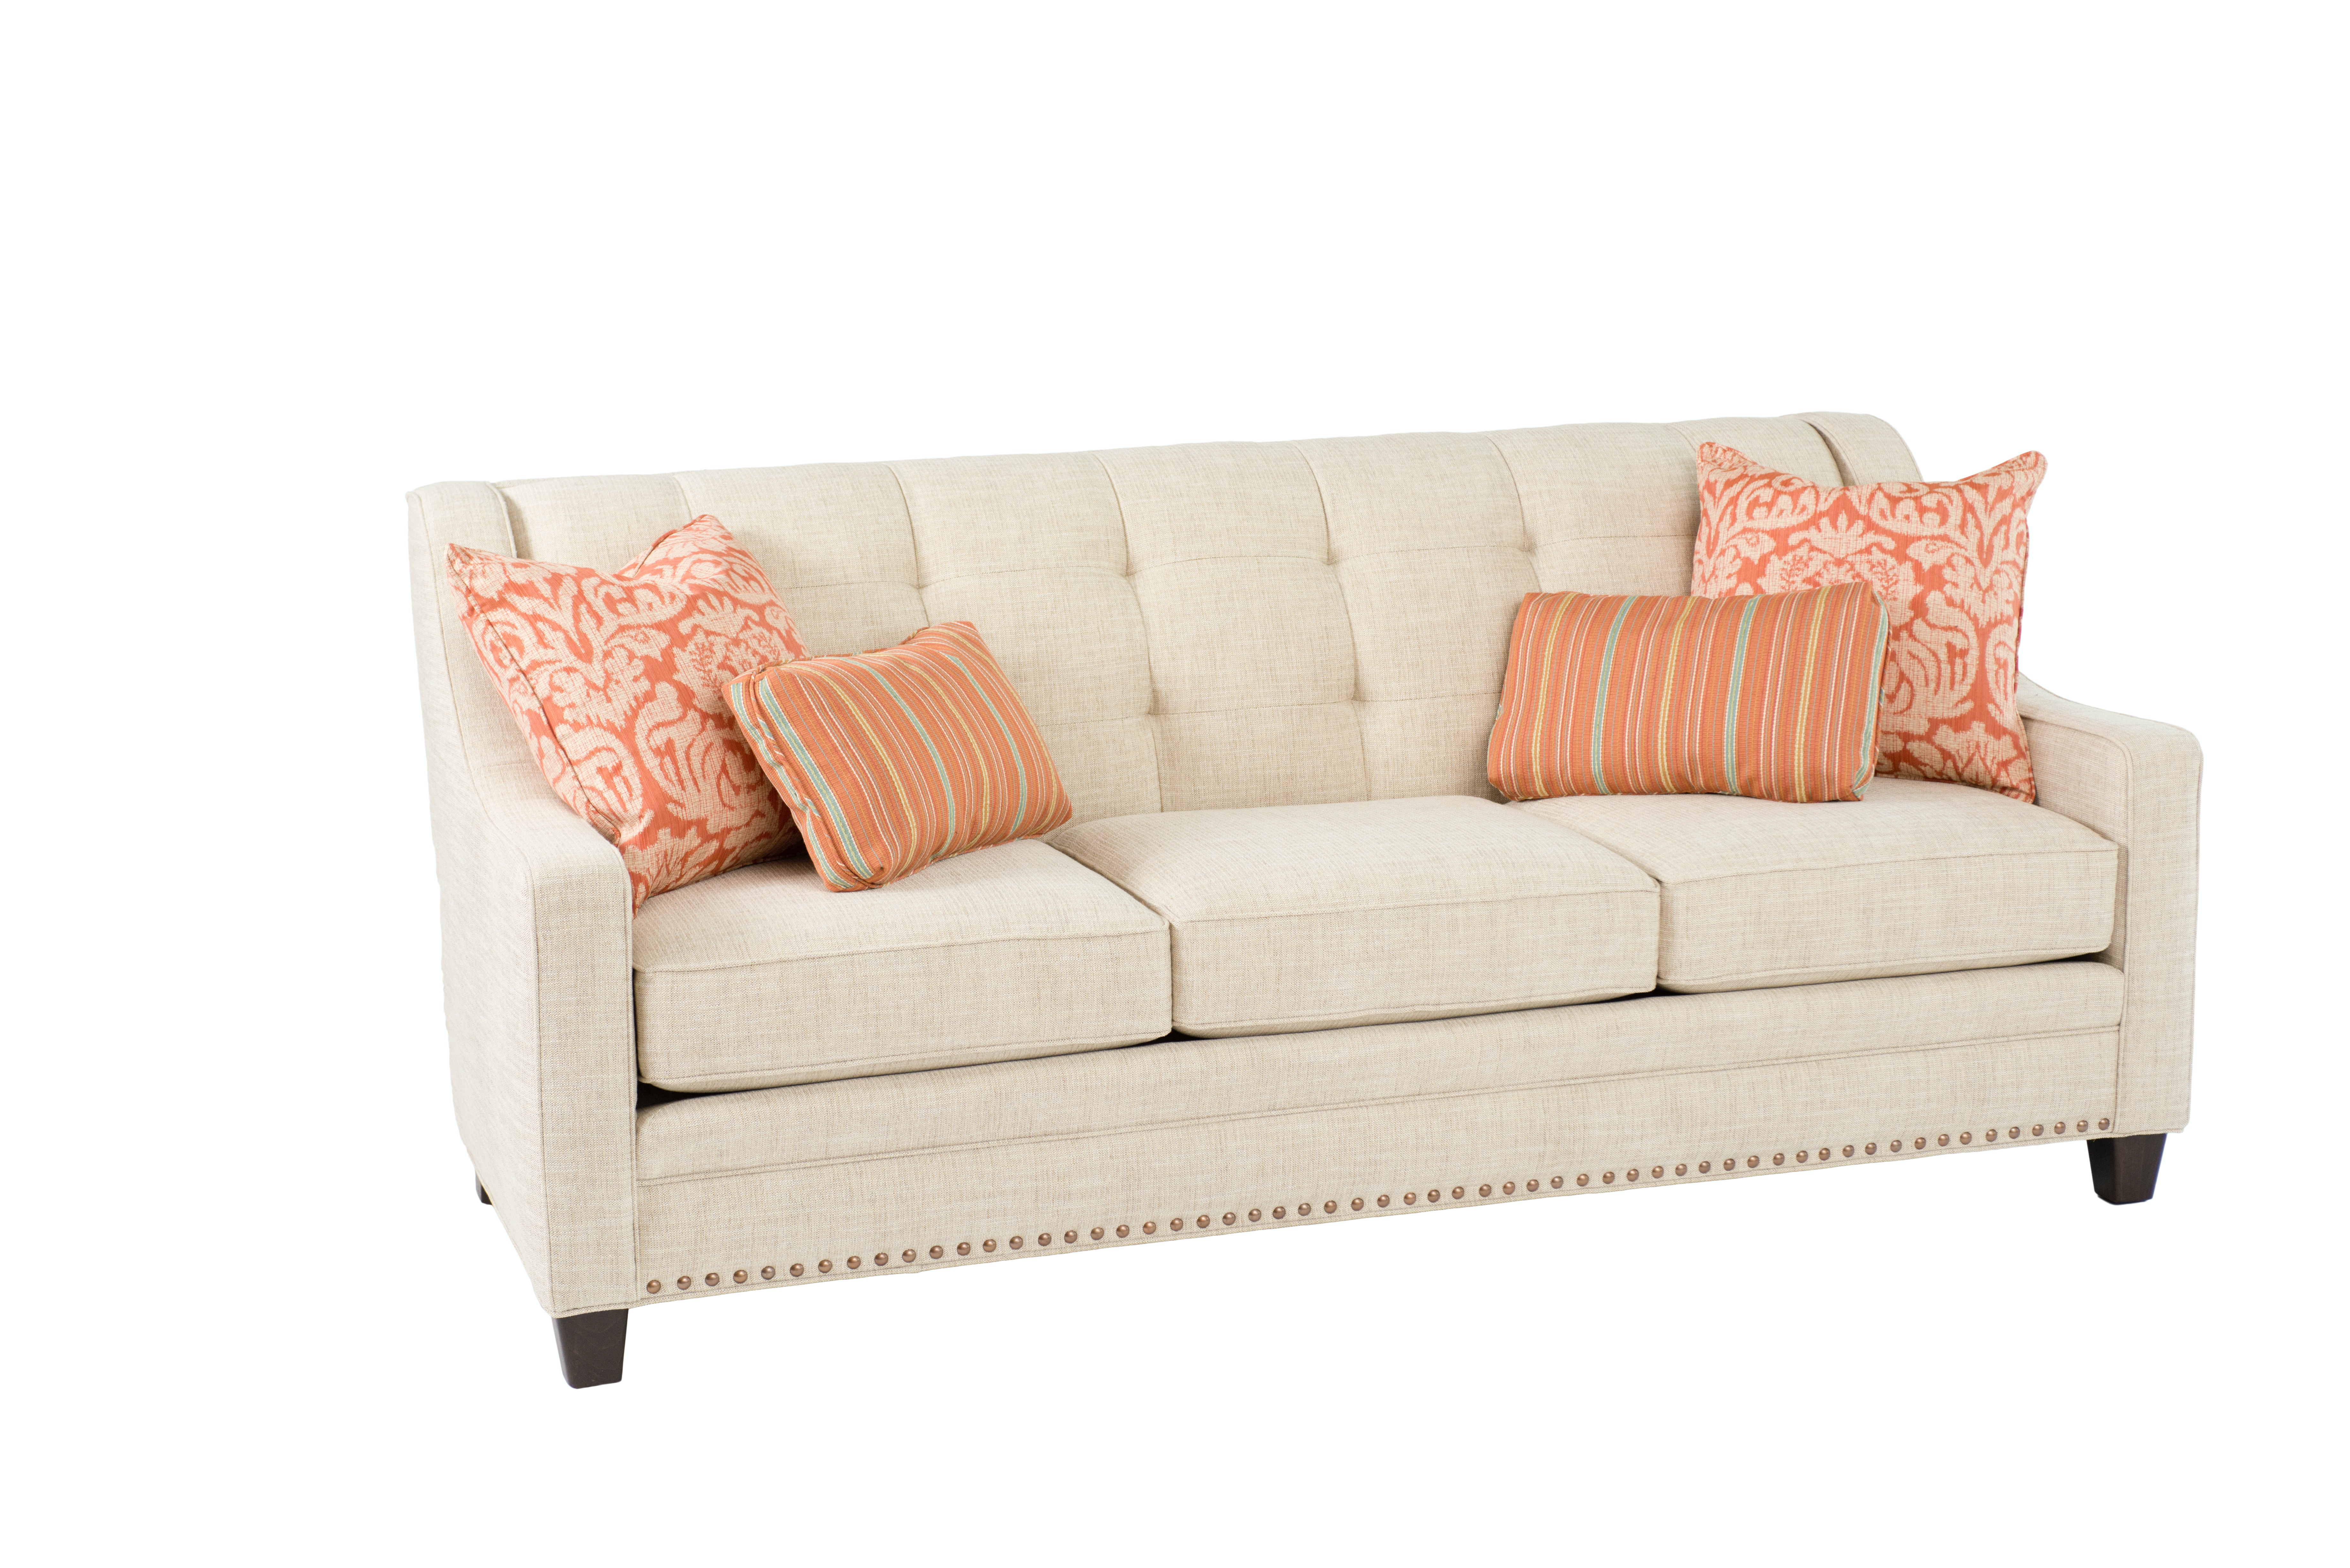 Smith Brothers Living Room Sofa 203 10 Weinberger 39 S